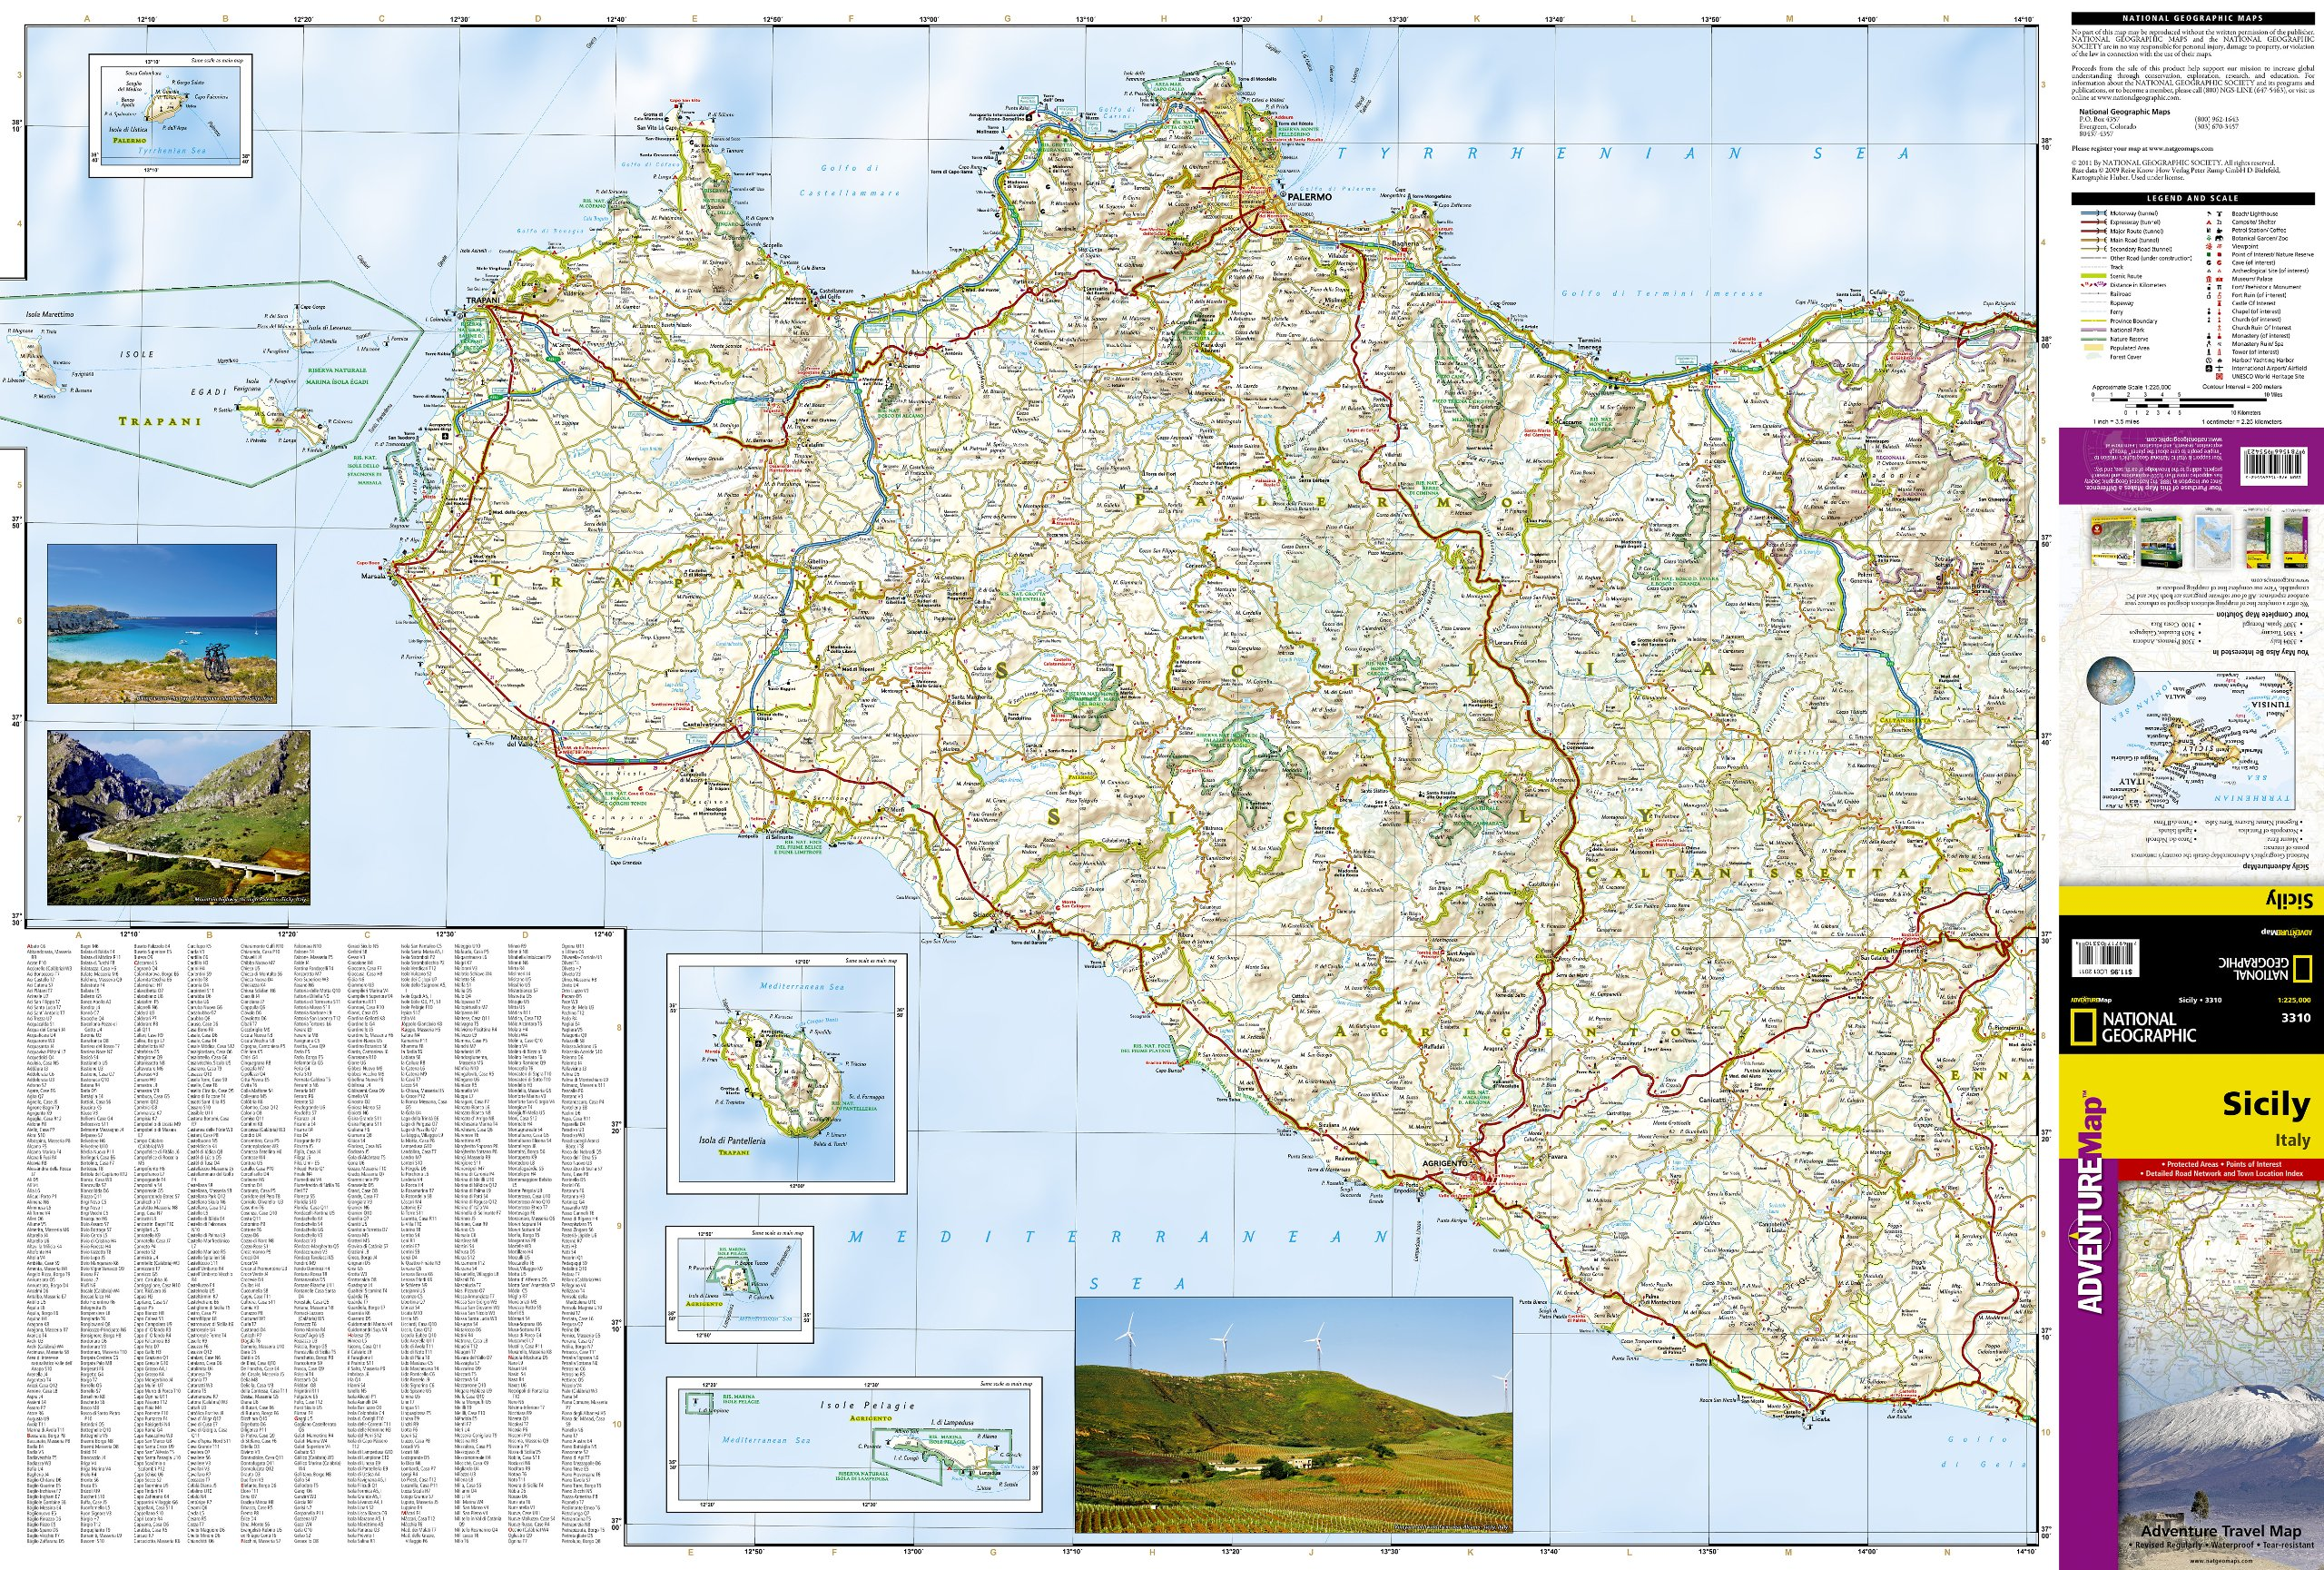 Sicily adventure map national geographic maps 9781566955423 books sicily adventure map national geographic maps 9781566955423 books amazon gumiabroncs Gallery